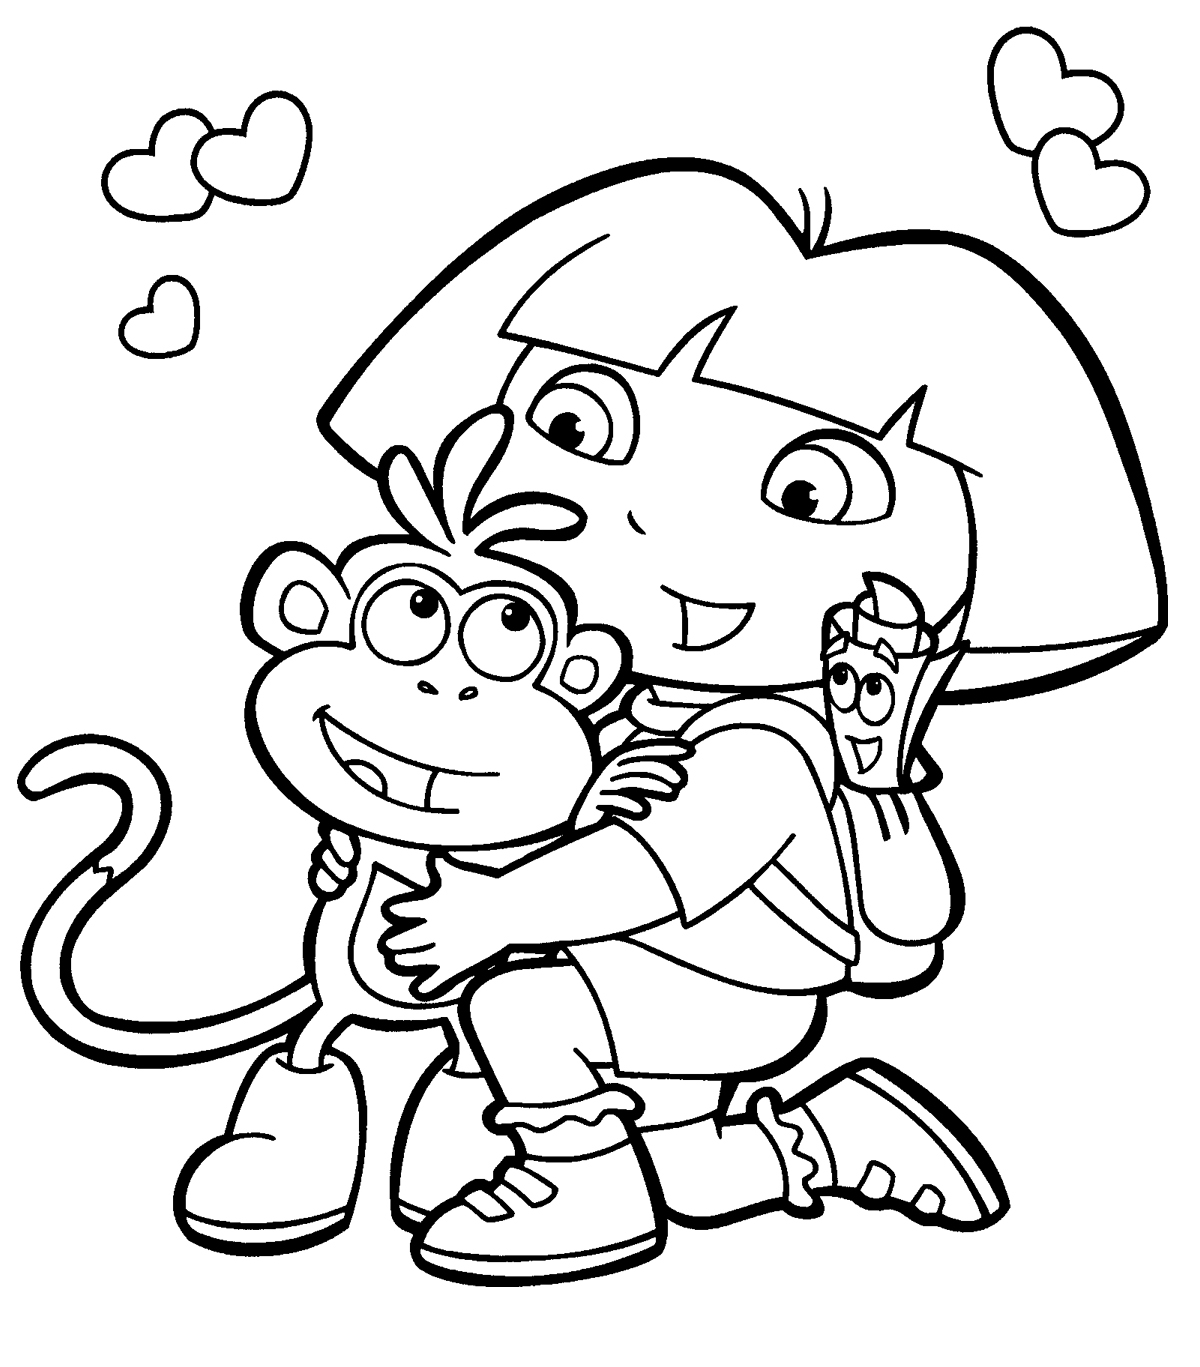 cartton coloring pages - photo#36